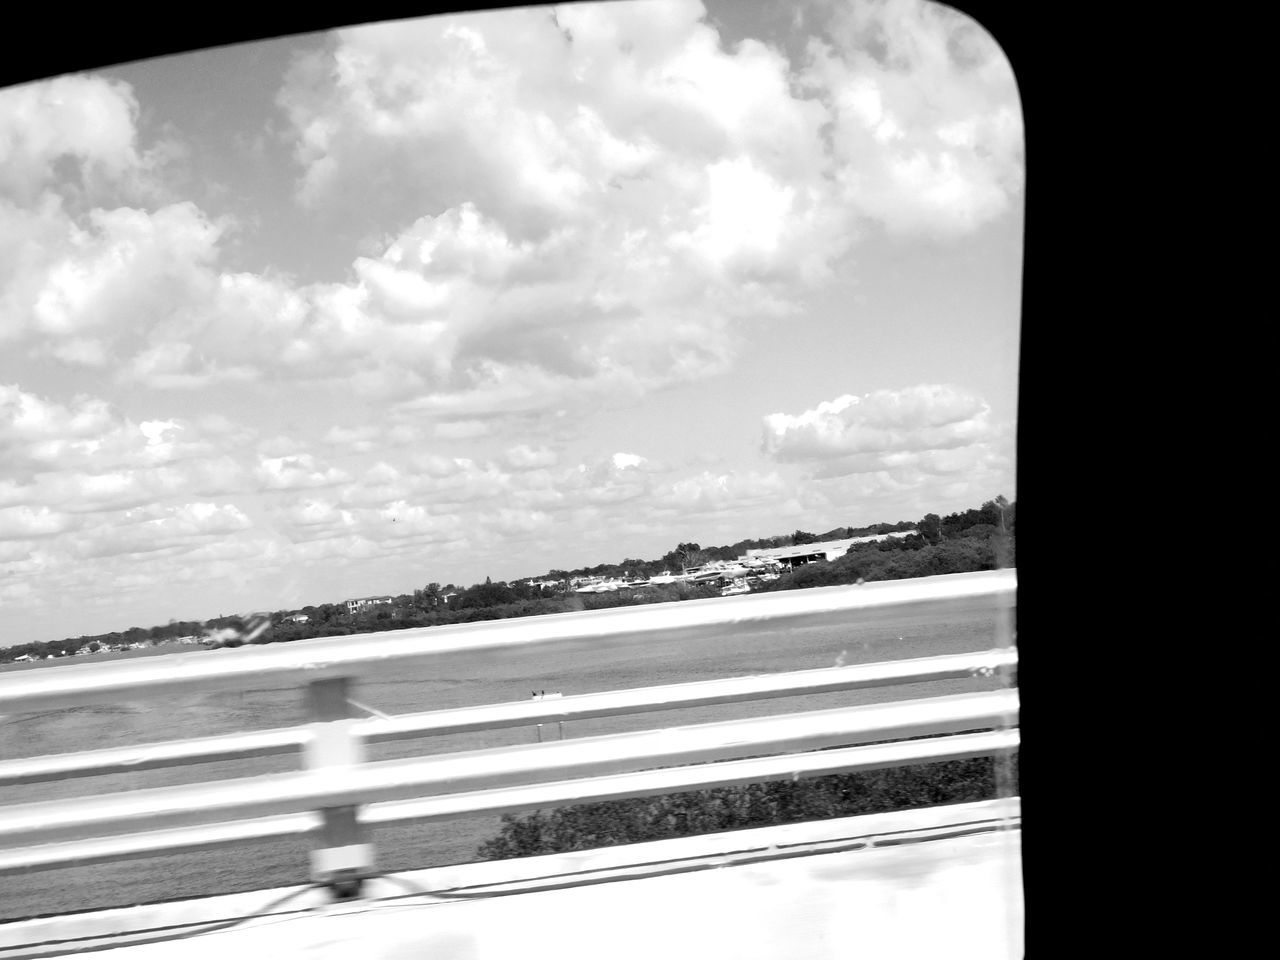 Monochrome Photography Outdoors Nature Capturing Movement Water Blackandwhite Florida Intercoastal On The Move View From The Car View From A Bridge Bridge - Man Made Structure Motion Blur In The Car Slanted Indian Rocks Beach, FL Florida Nature Beauty In Nature Blackandwhite Photography Car Ride  Traveling Travel Destinations The Drive On The Road Floridaphotographer